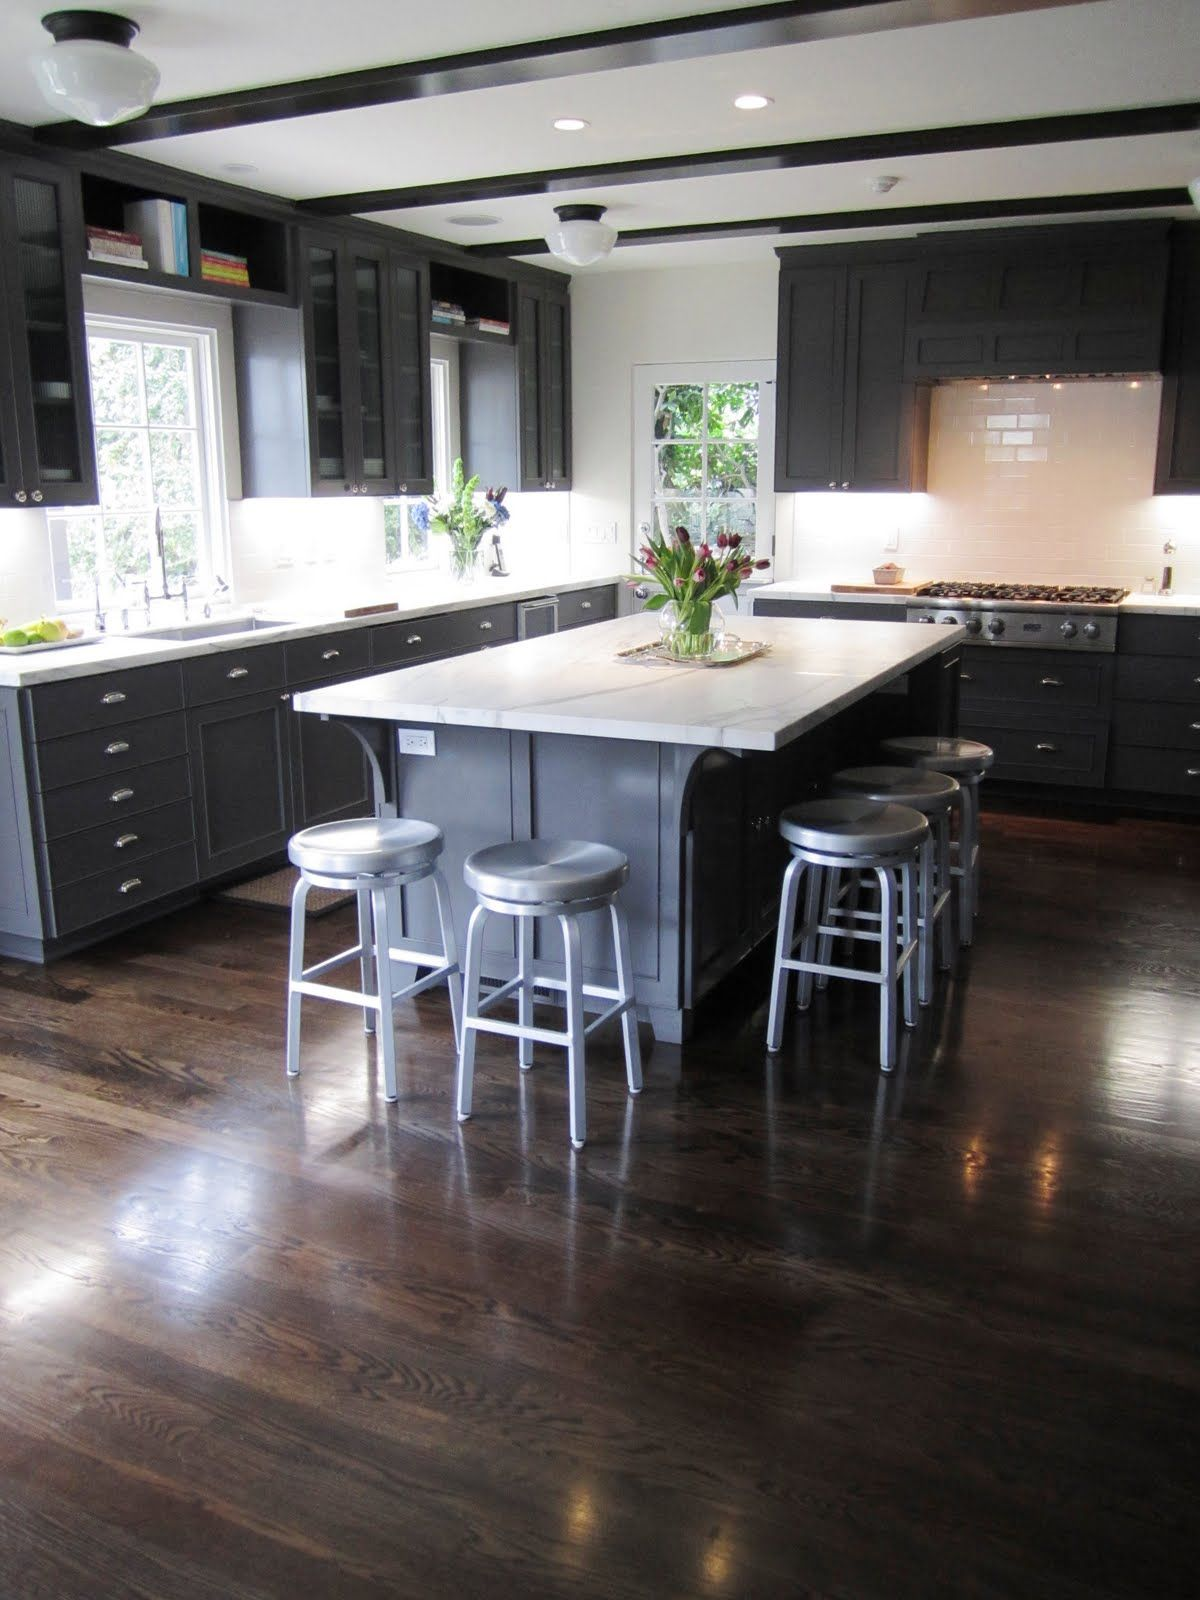 "Light Gray Kitchen With Dark Cabinets dark floor"" ""dark cabinets"" concrete countertop - google search"